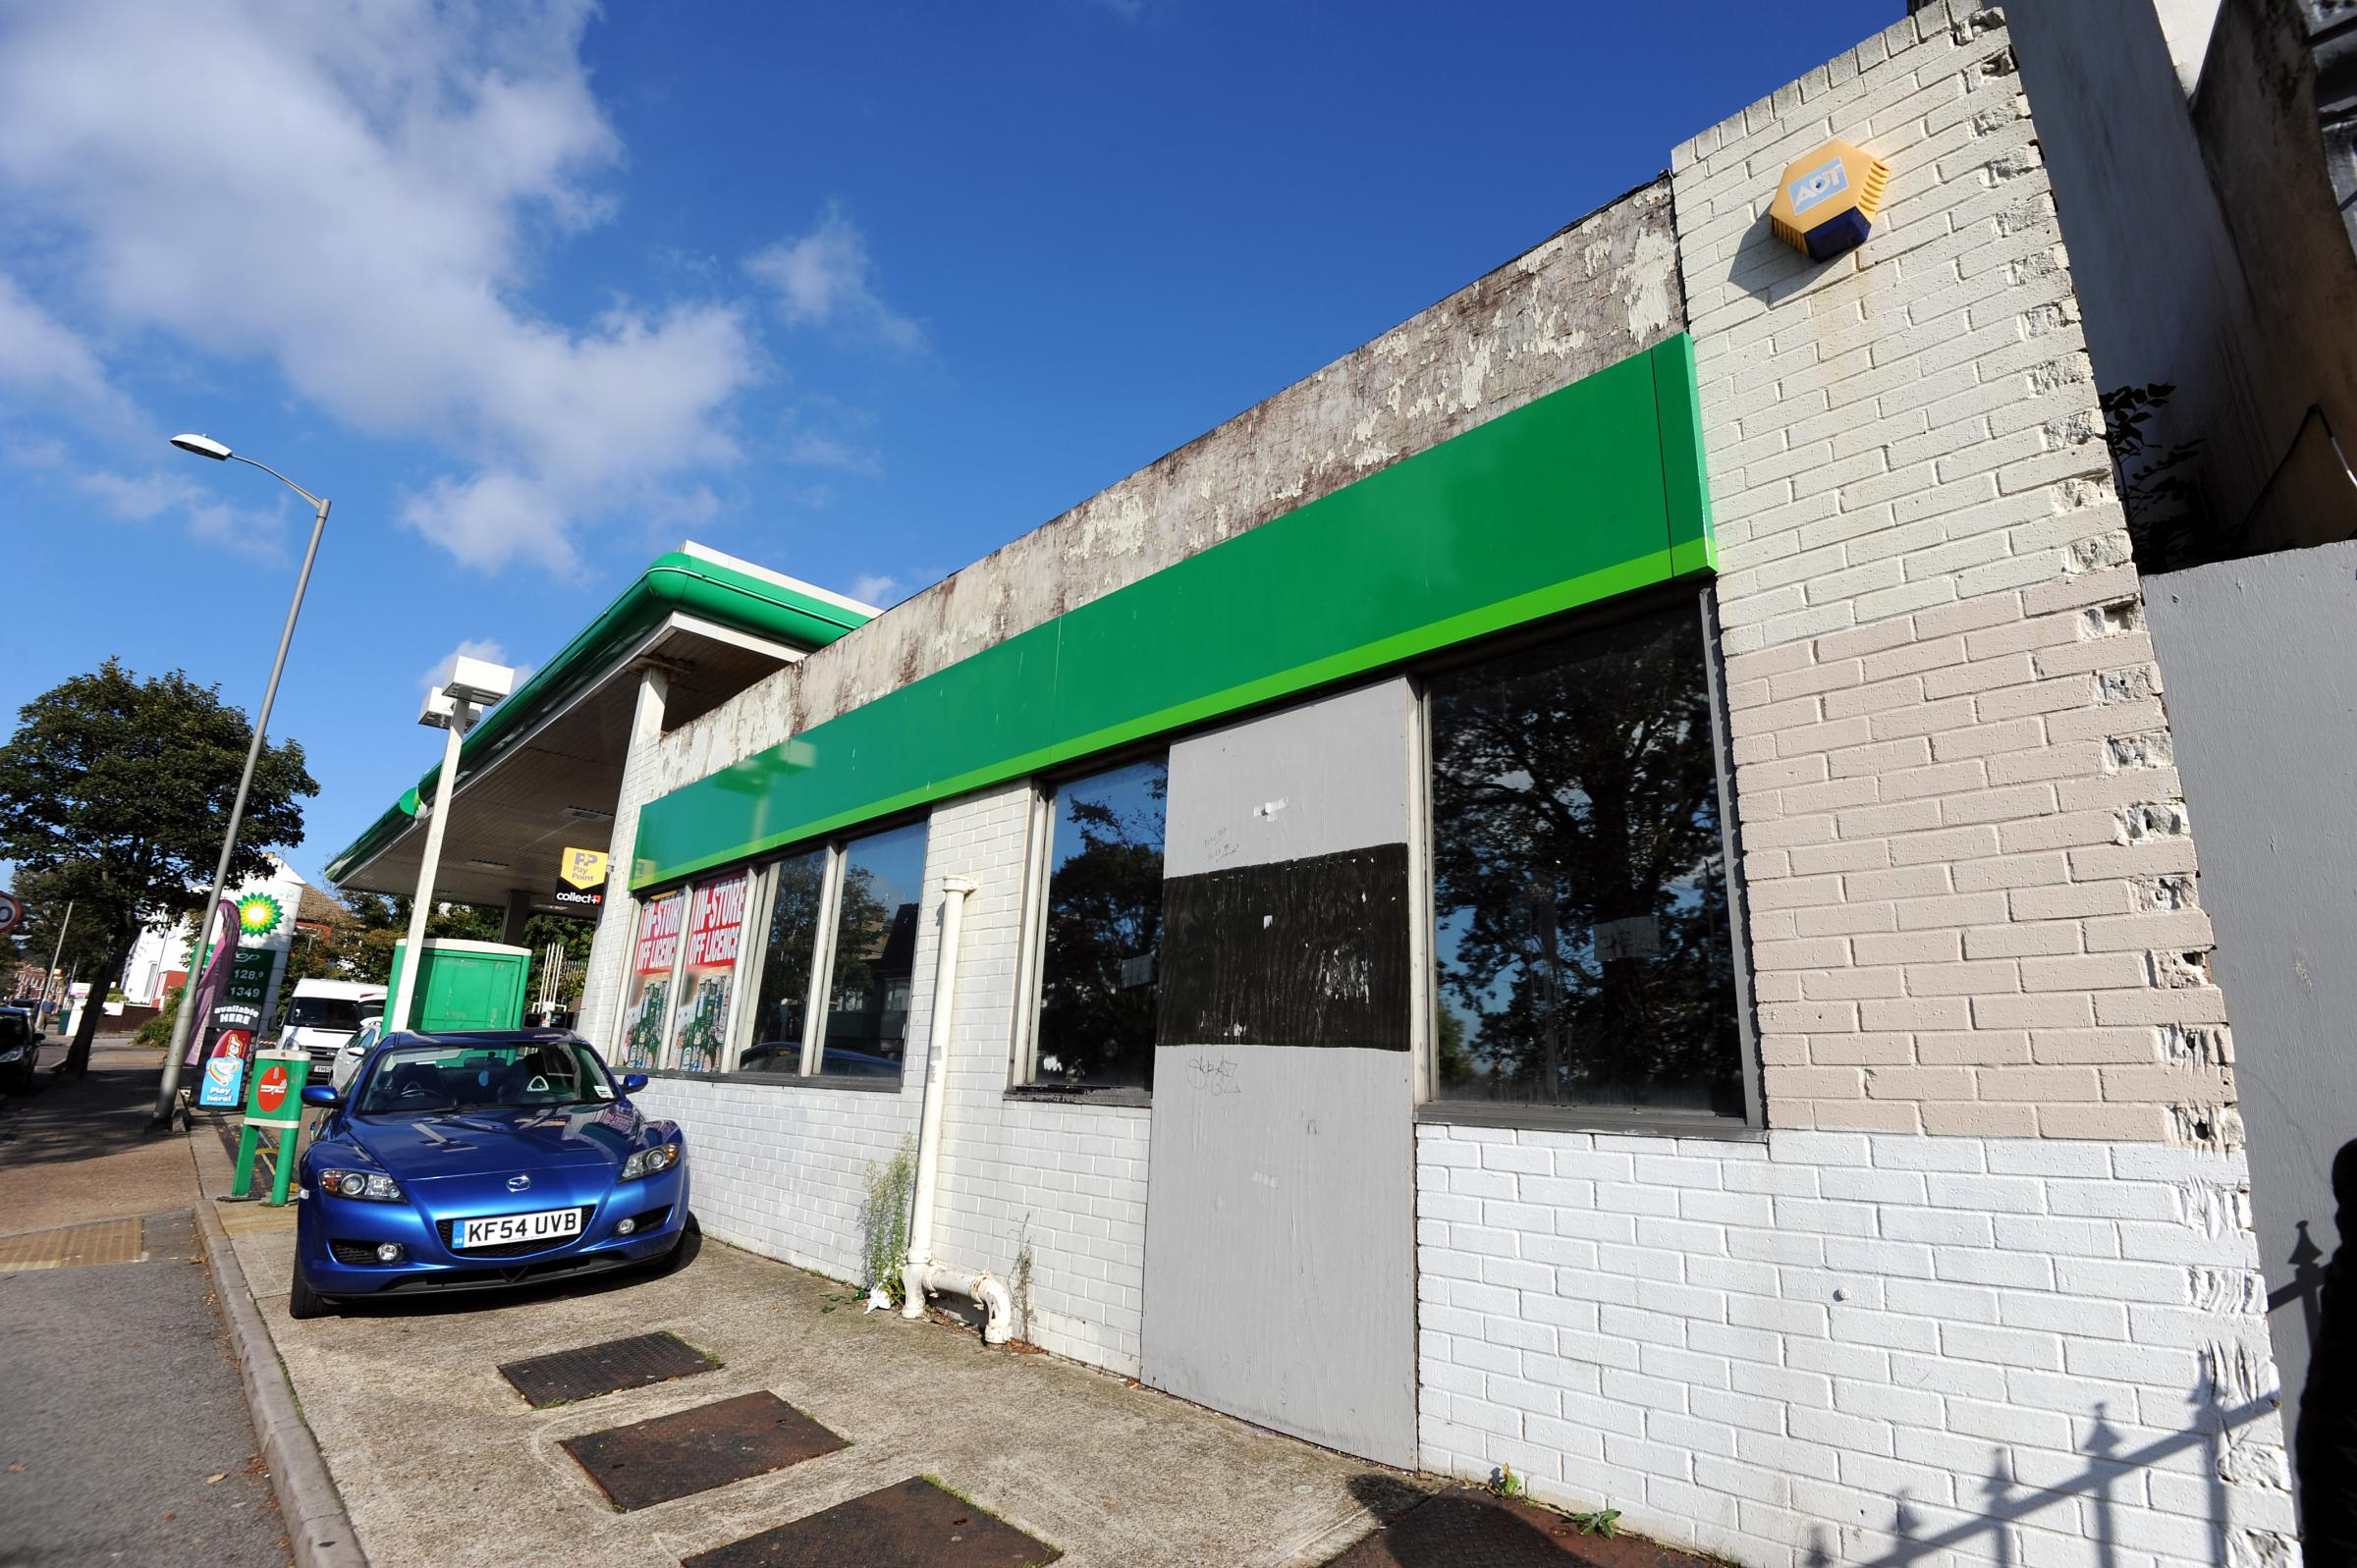 The Ditchling Road BP garage